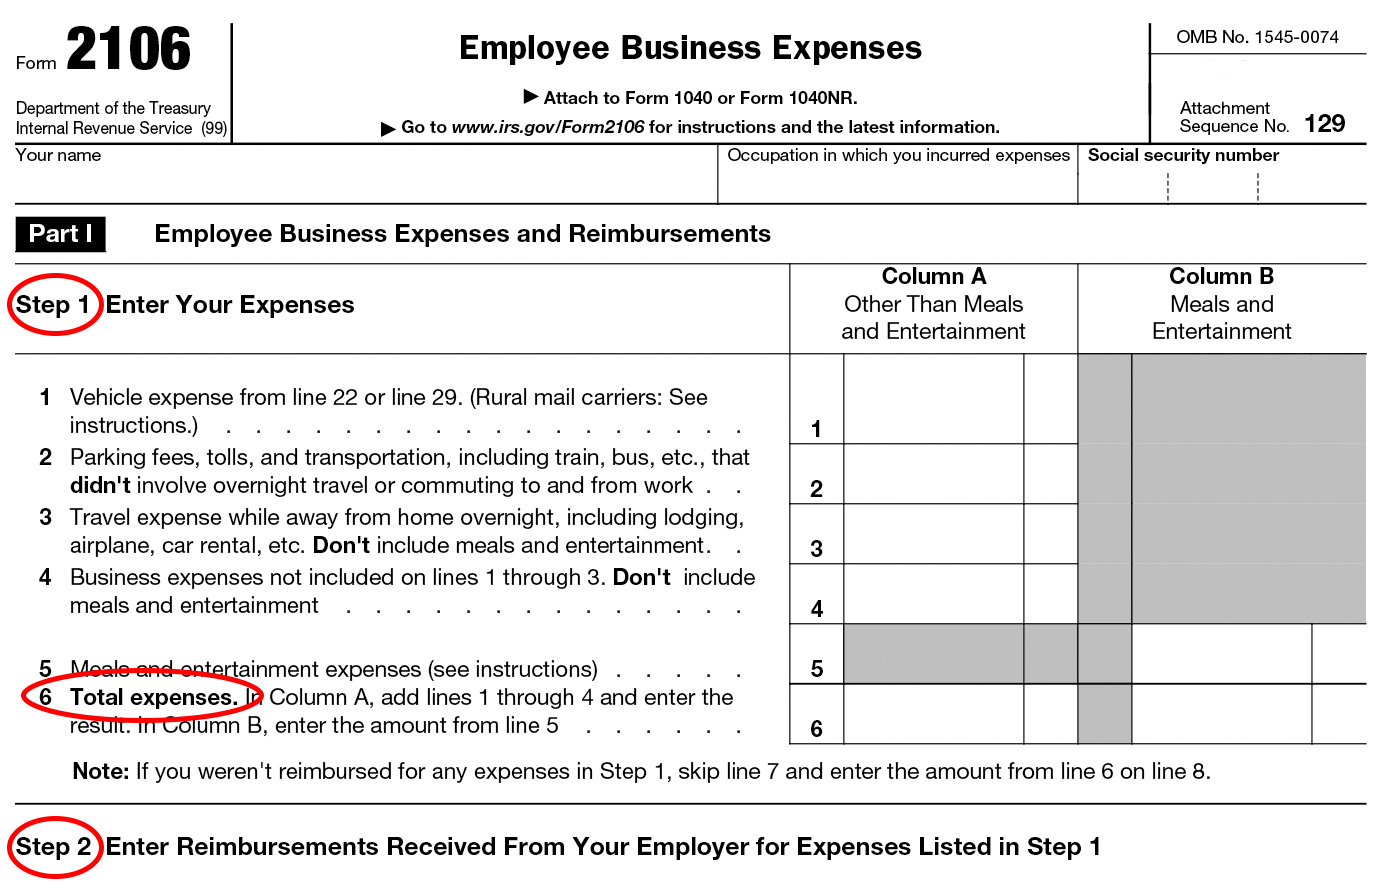 Form 2106: Instructions & Information on IRS Form 2106